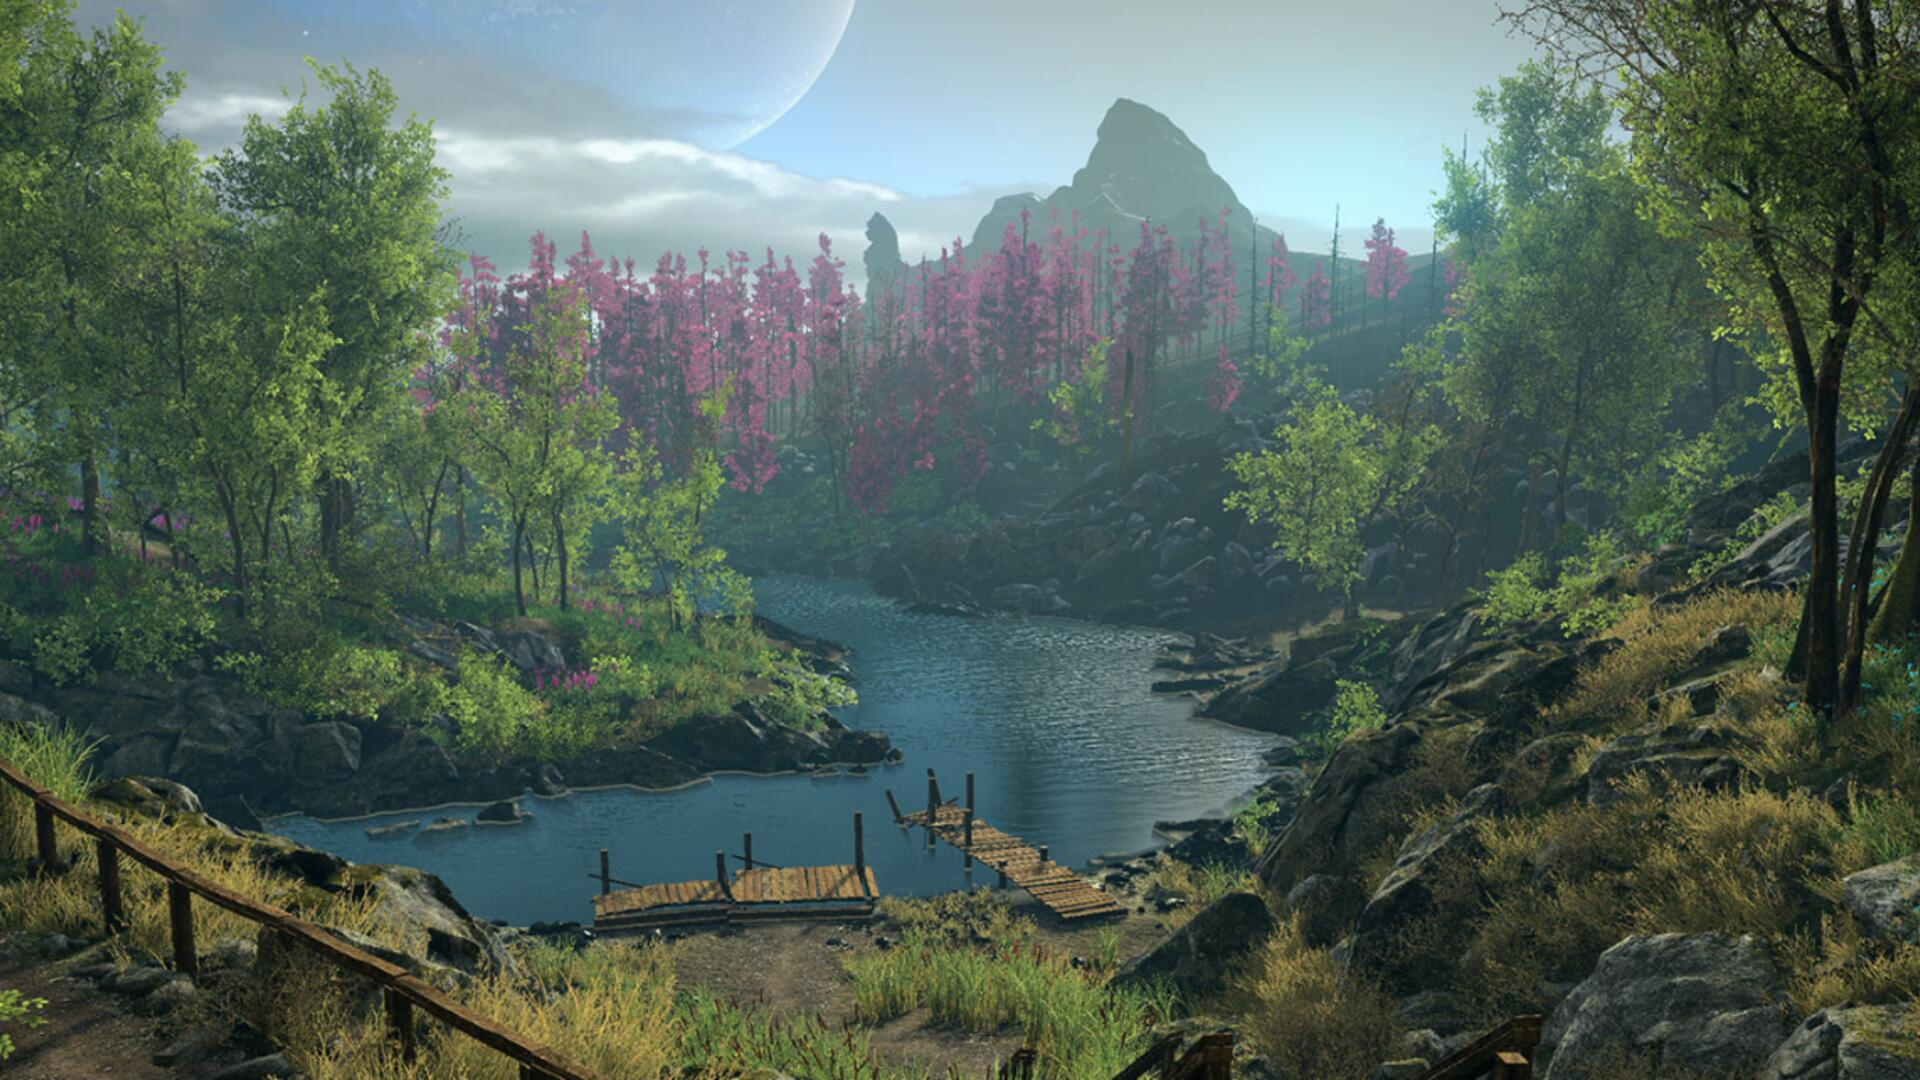 The Only Tool You'll Use In This Open-World Adventure Game is a Paint Brush